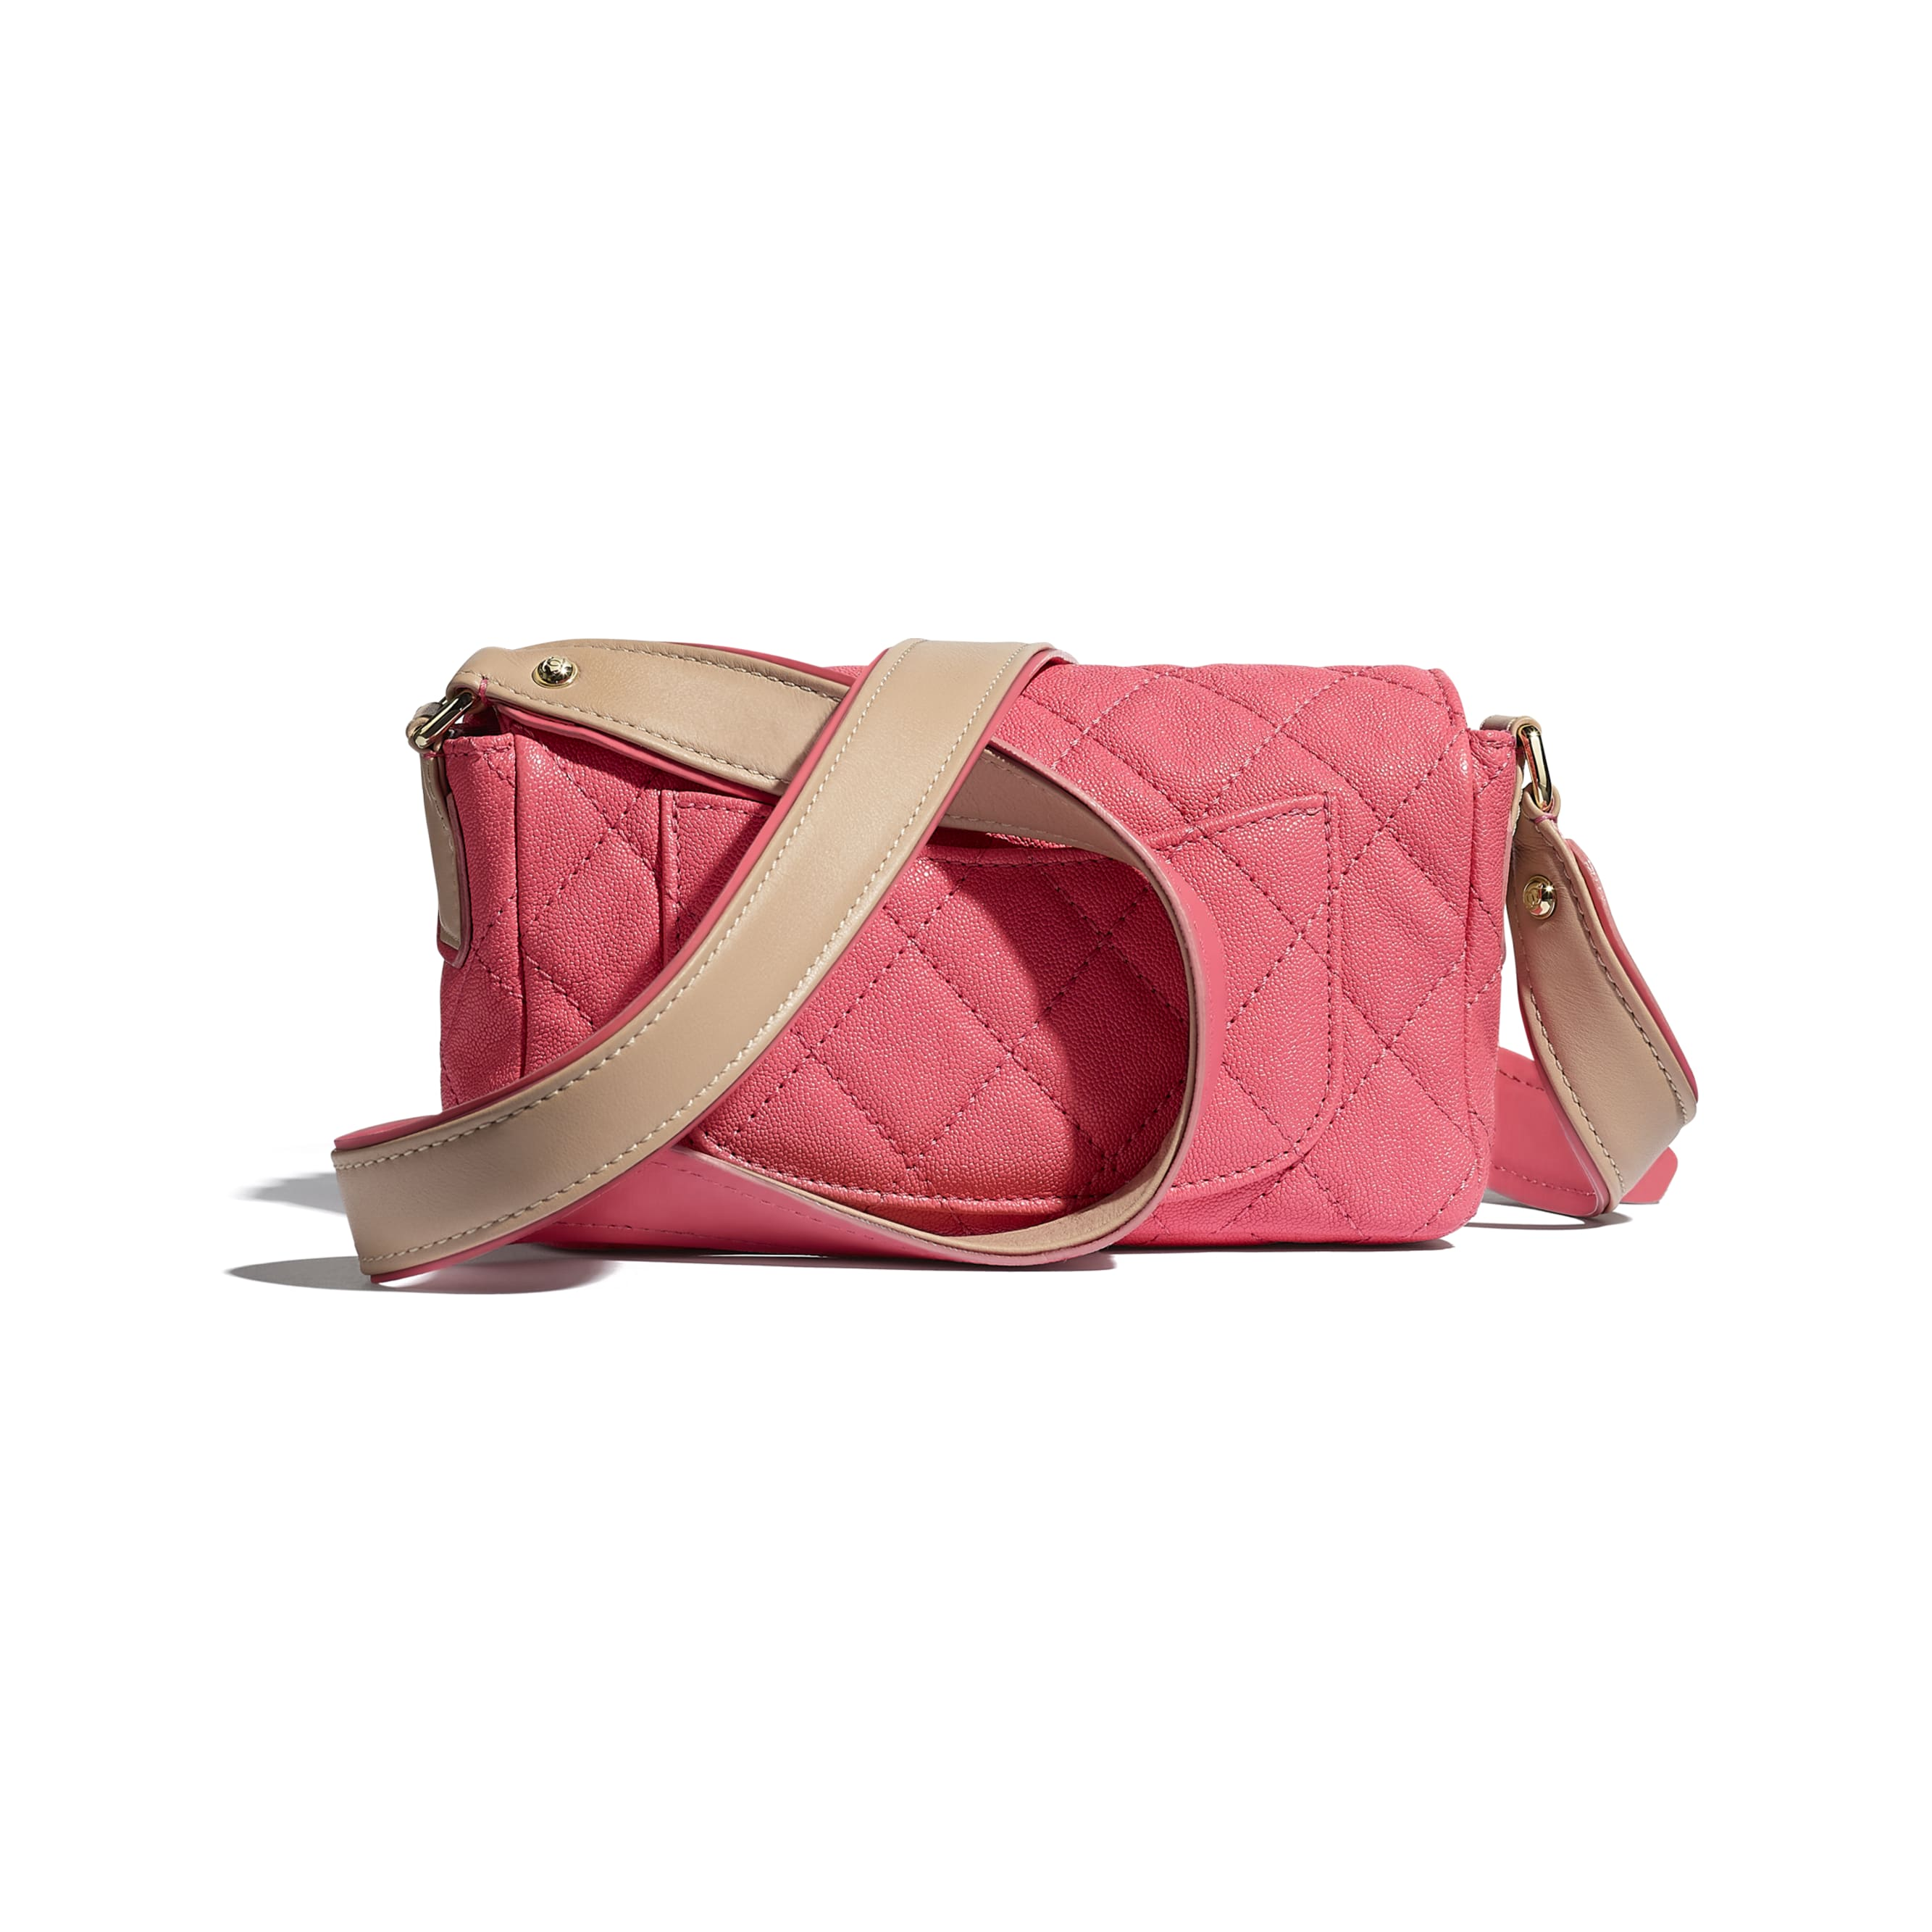 Flap Bag - Coral - Grained Calfskin, Smooth Calfskin & Gold-Tone Metal - CHANEL - Alternative view - see standard sized version